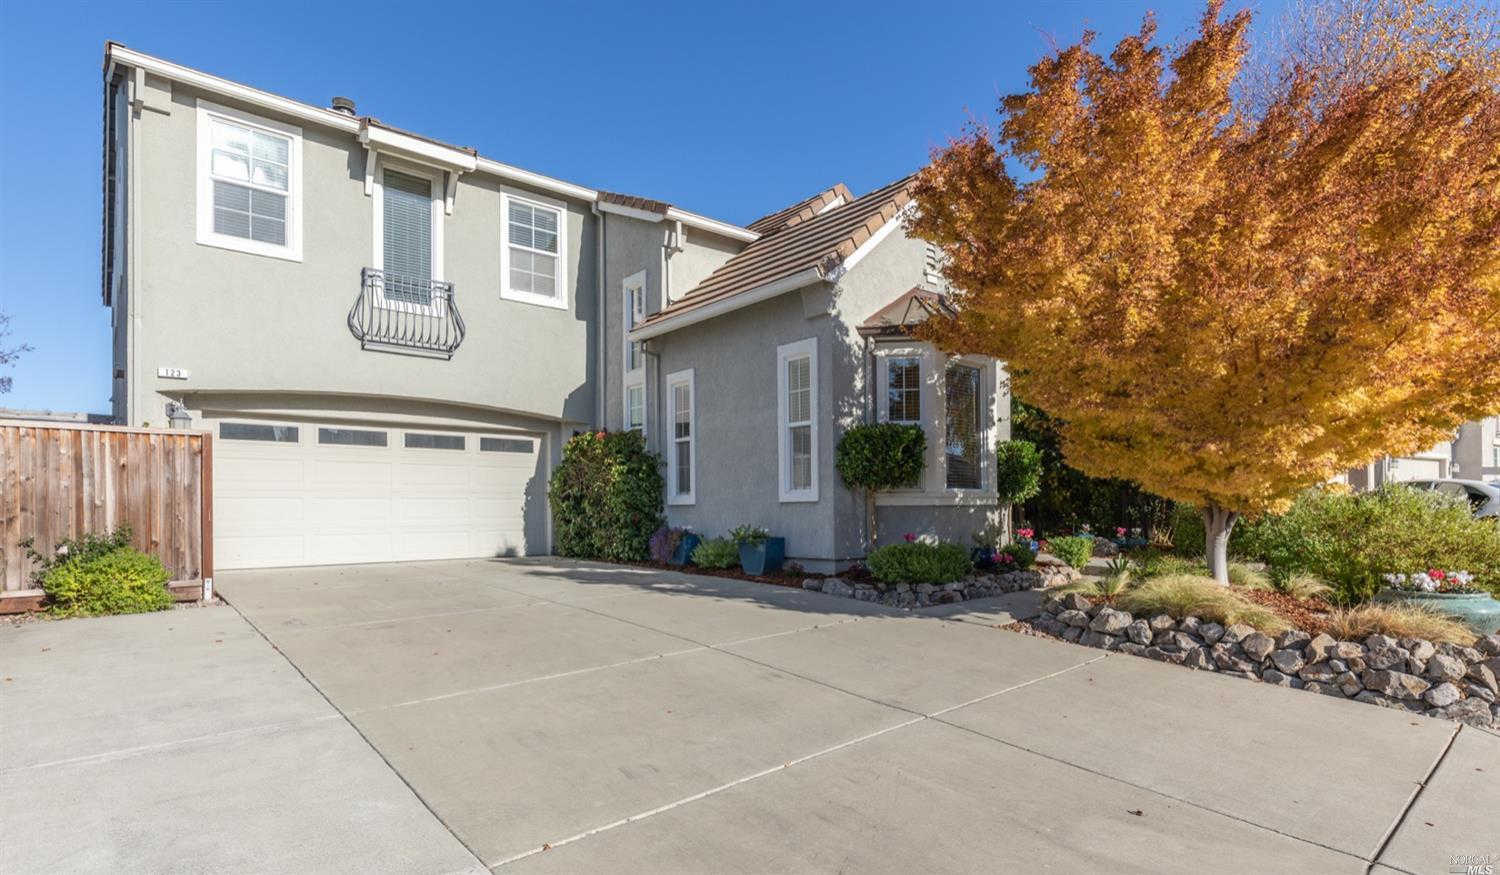 123 Horizon Way, American Canyon, CA 94503 has an Open House on  Sunday, December 15, 2019 12:00 PM to 3:00 PM